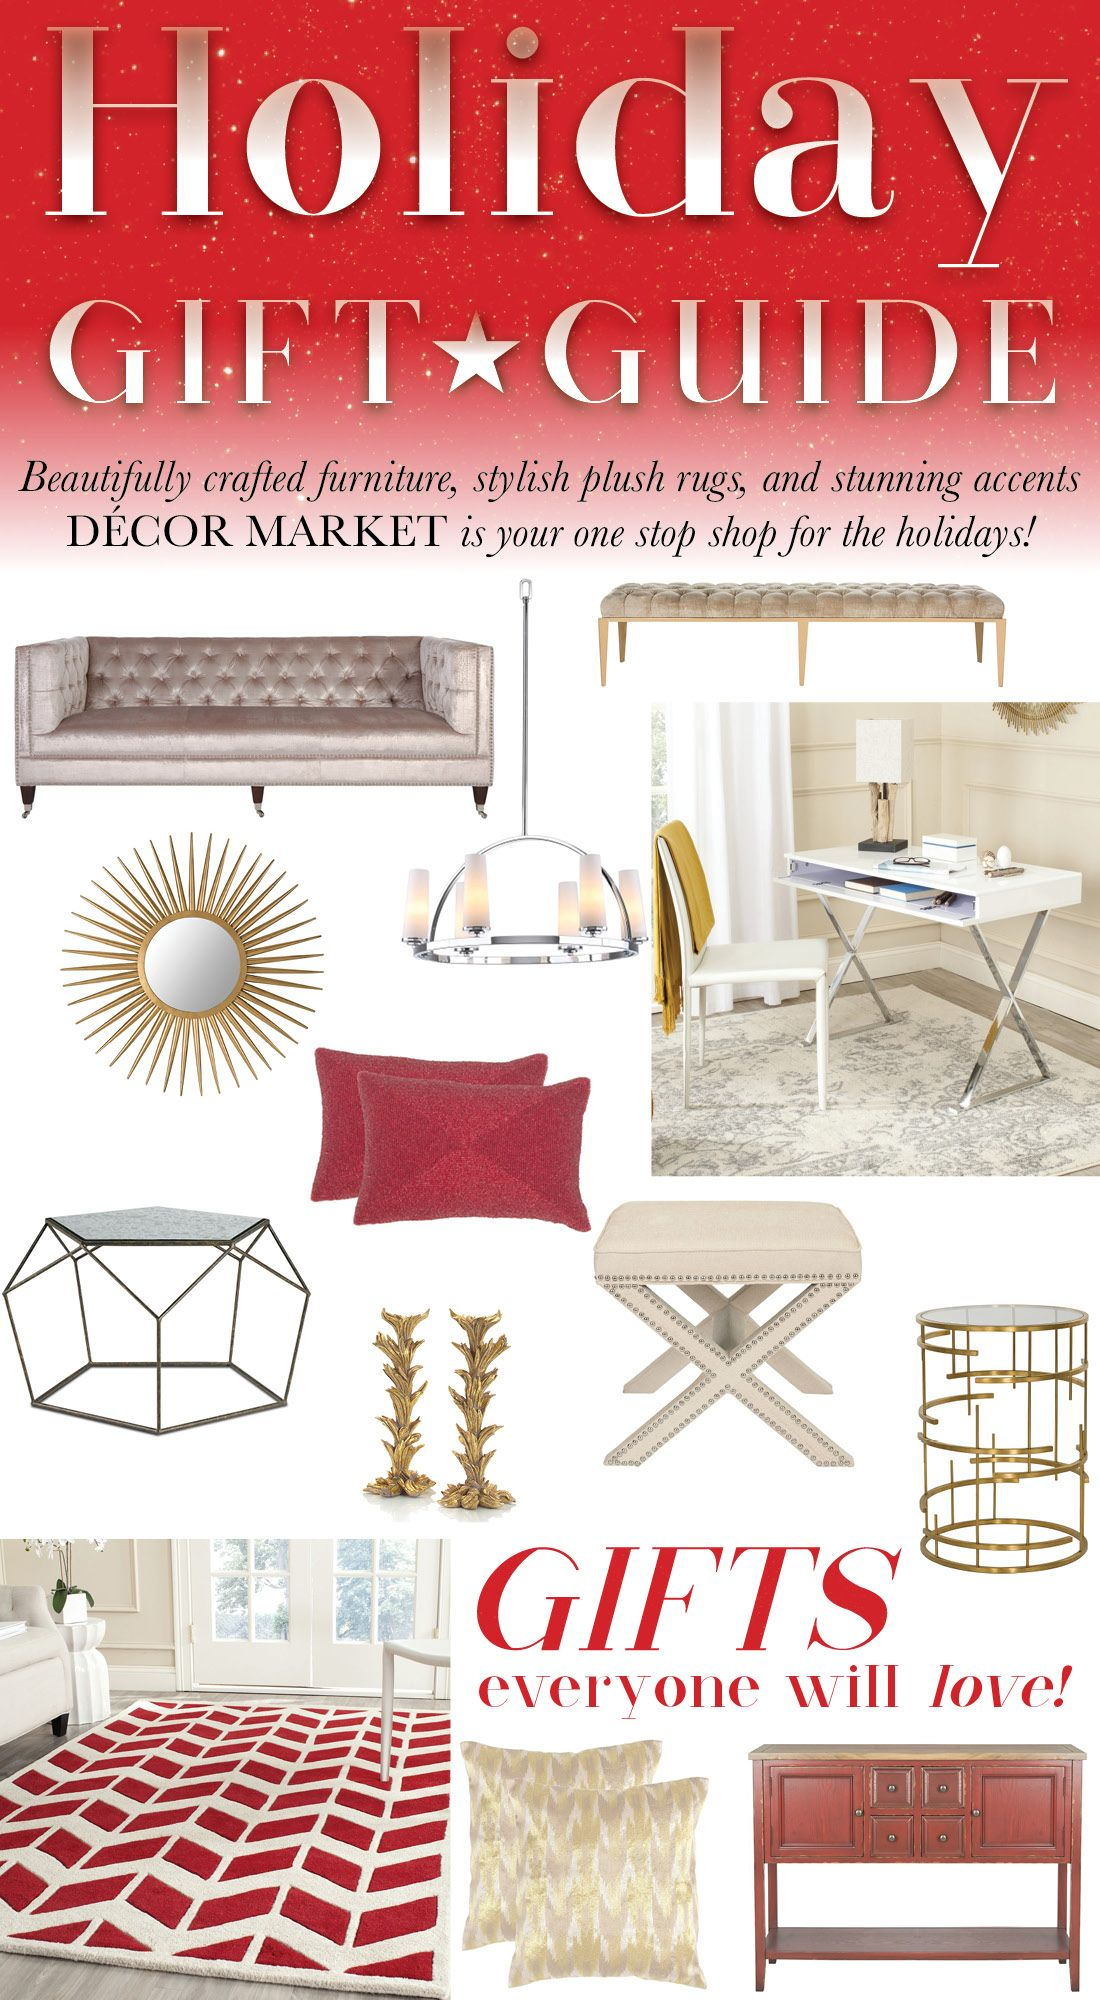 Our Holiday Gift Guide Has You Covered! Shop Great Deals On Furniture, Rugs  U0026 Home Accents For That Home Decor Lover In Your Life! SHOP NOW:  Decormarket.com